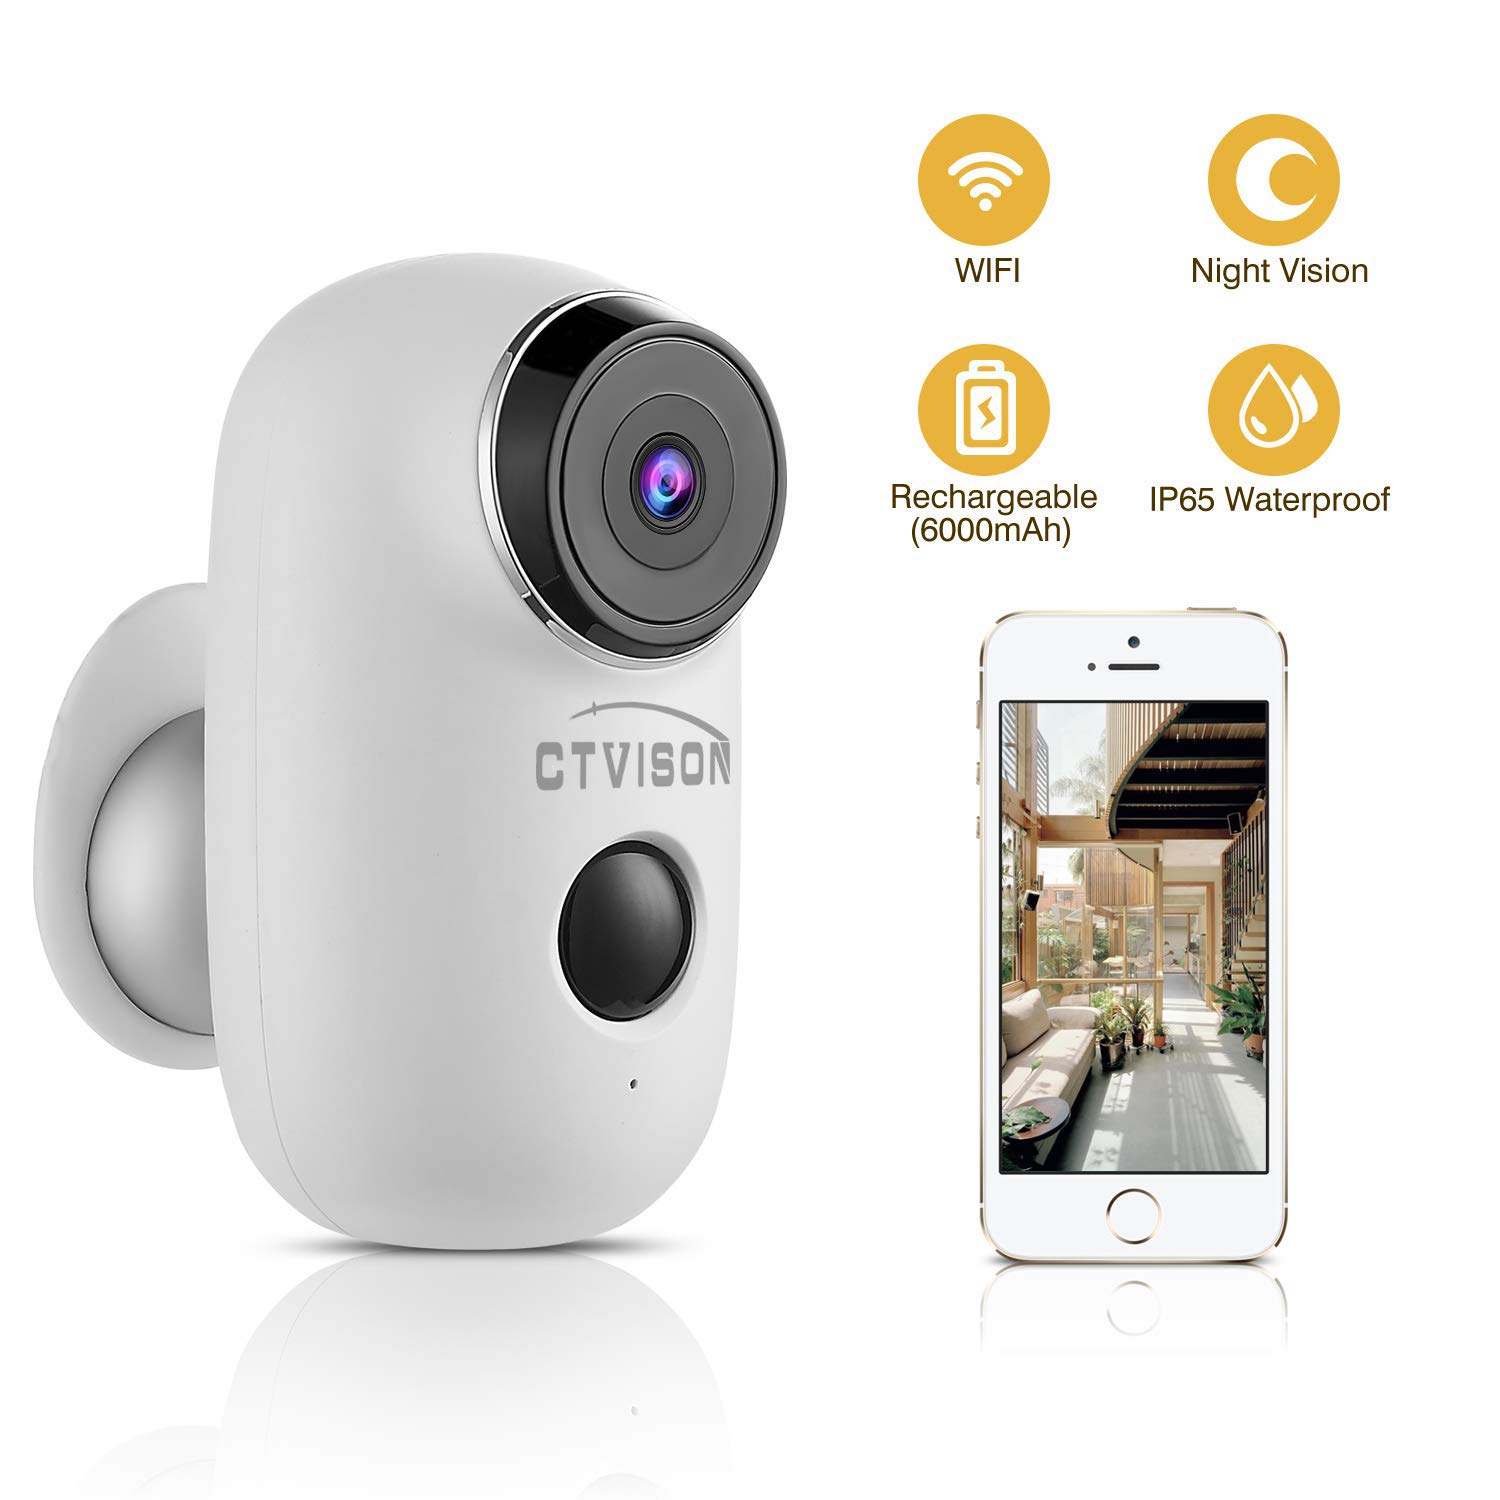 CTVISON Indoor/Outdoor Battery Powered Security Camera,Wireless Rechargeable 6000mAh Home Surveillance WIFI Cam,Support 2-Way Audio,Night Vision w/PIR Motion Sensor & SD Slot, CCTV Video House Monitor